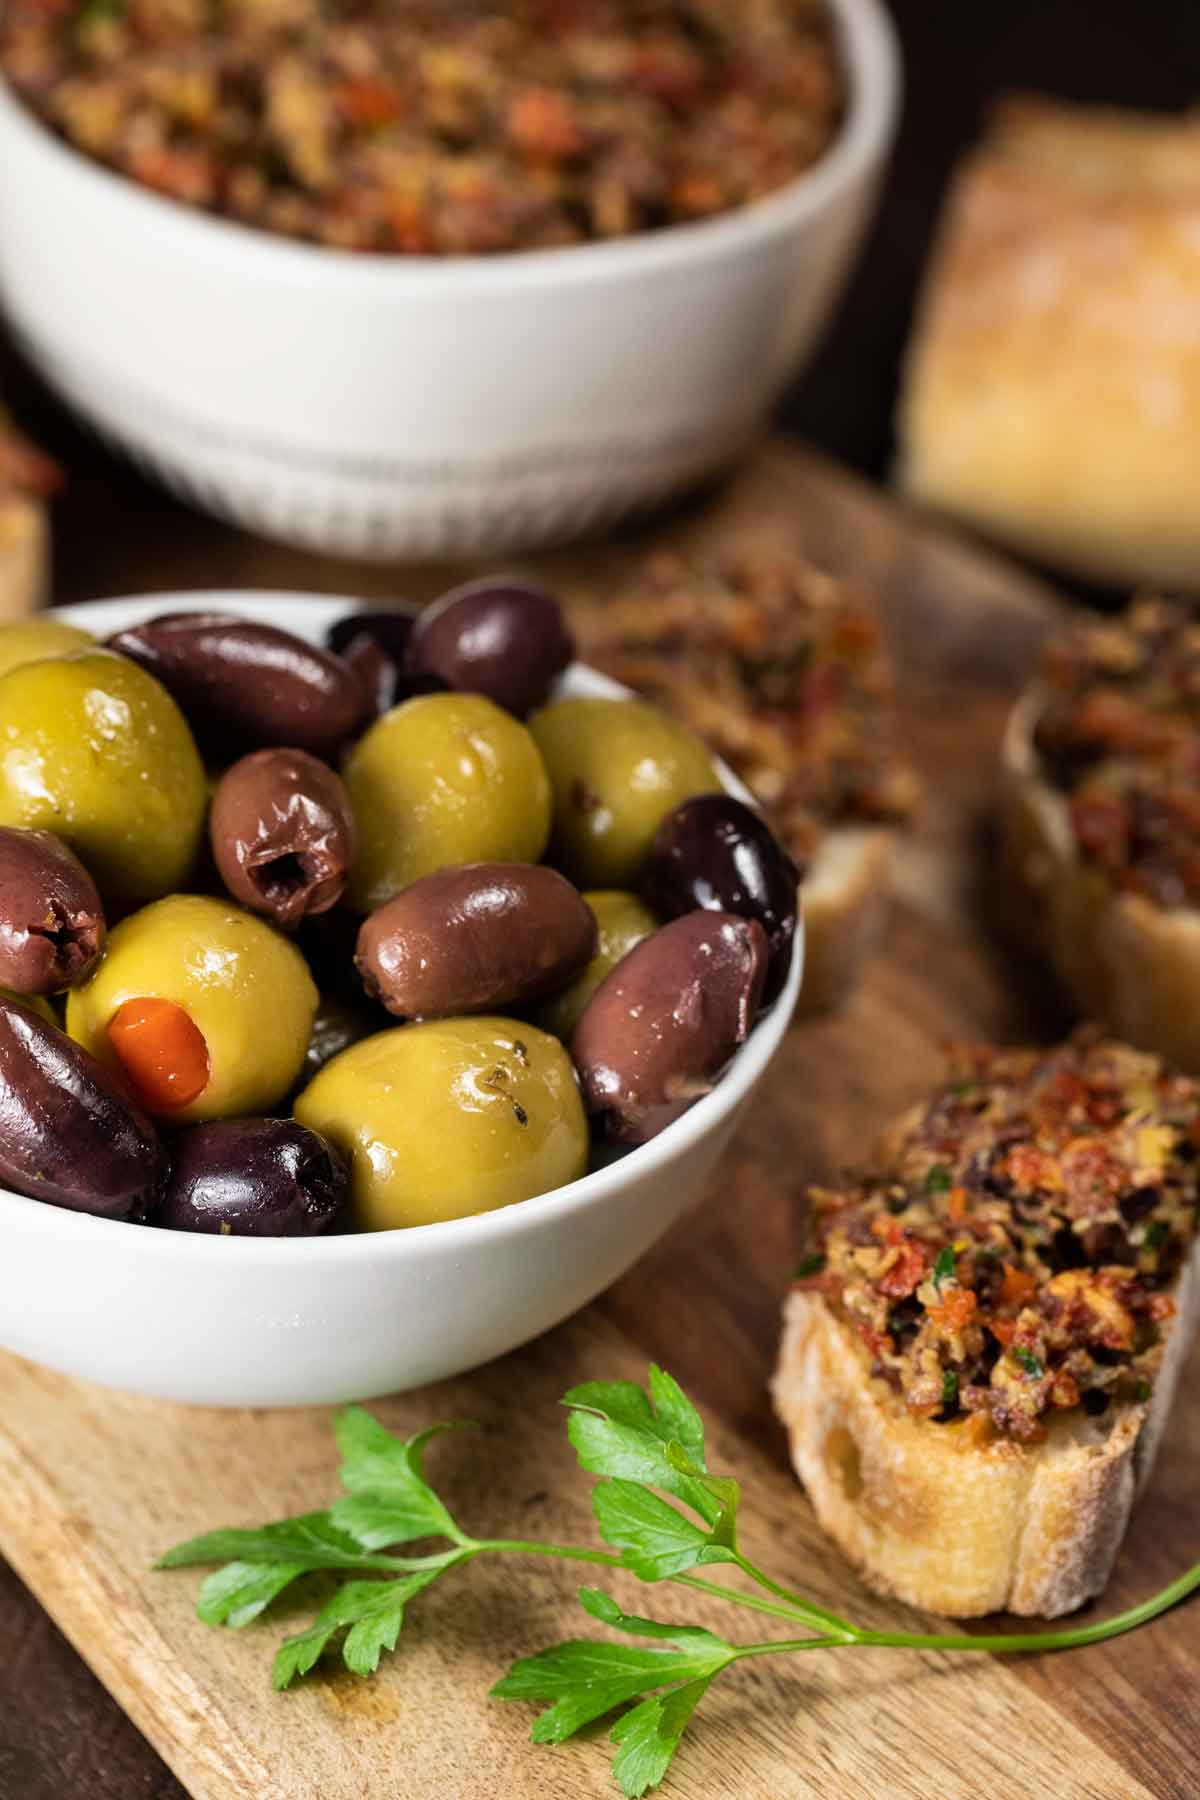 A bowl of olives with crusty bread topped with tapenade.